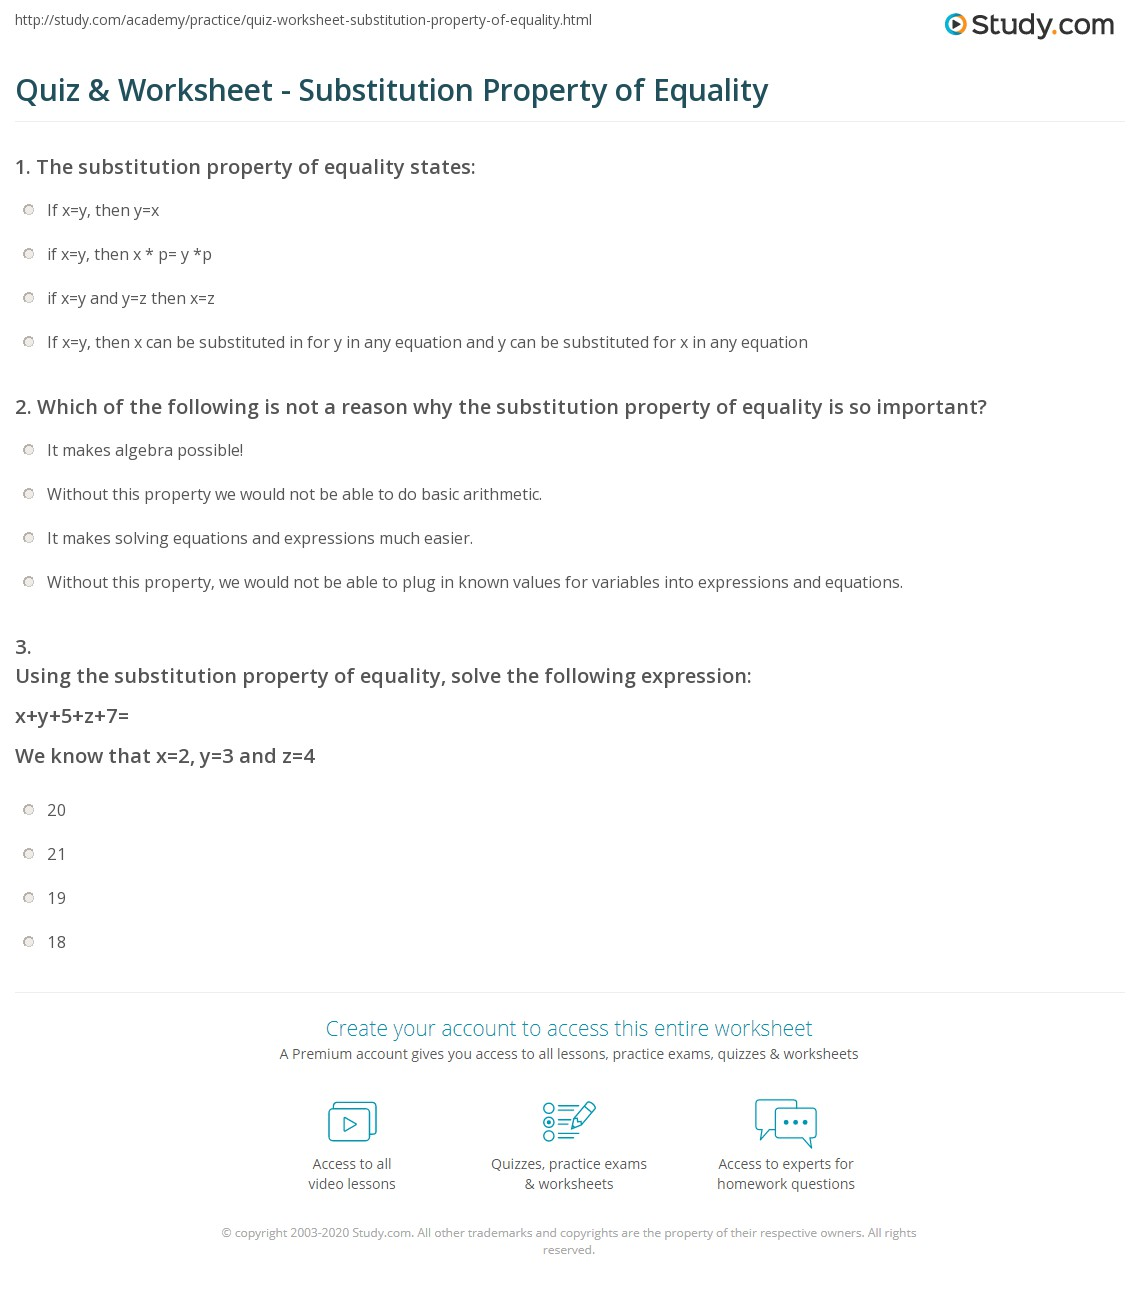 Quiz Worksheet Substitution Property Of Equality Study Com